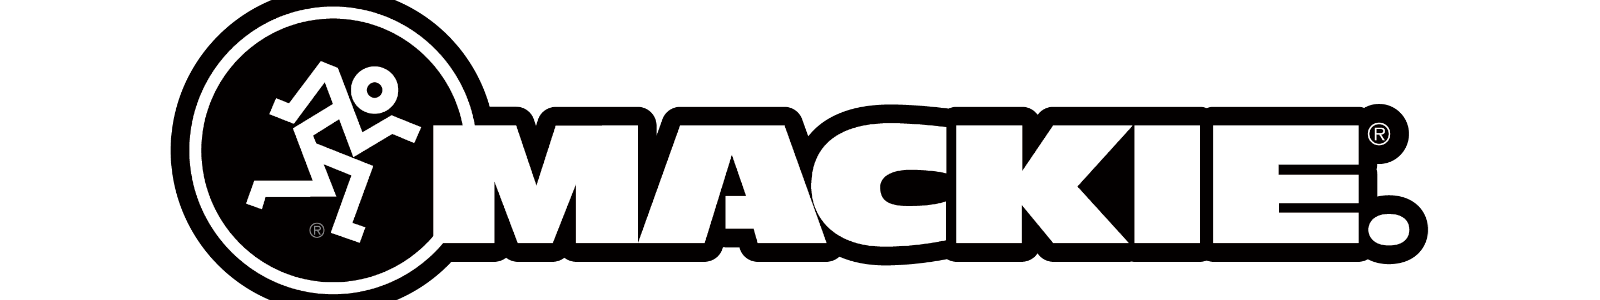 Mackie - Loud Audio - Business sponsor of The DJ Sessions